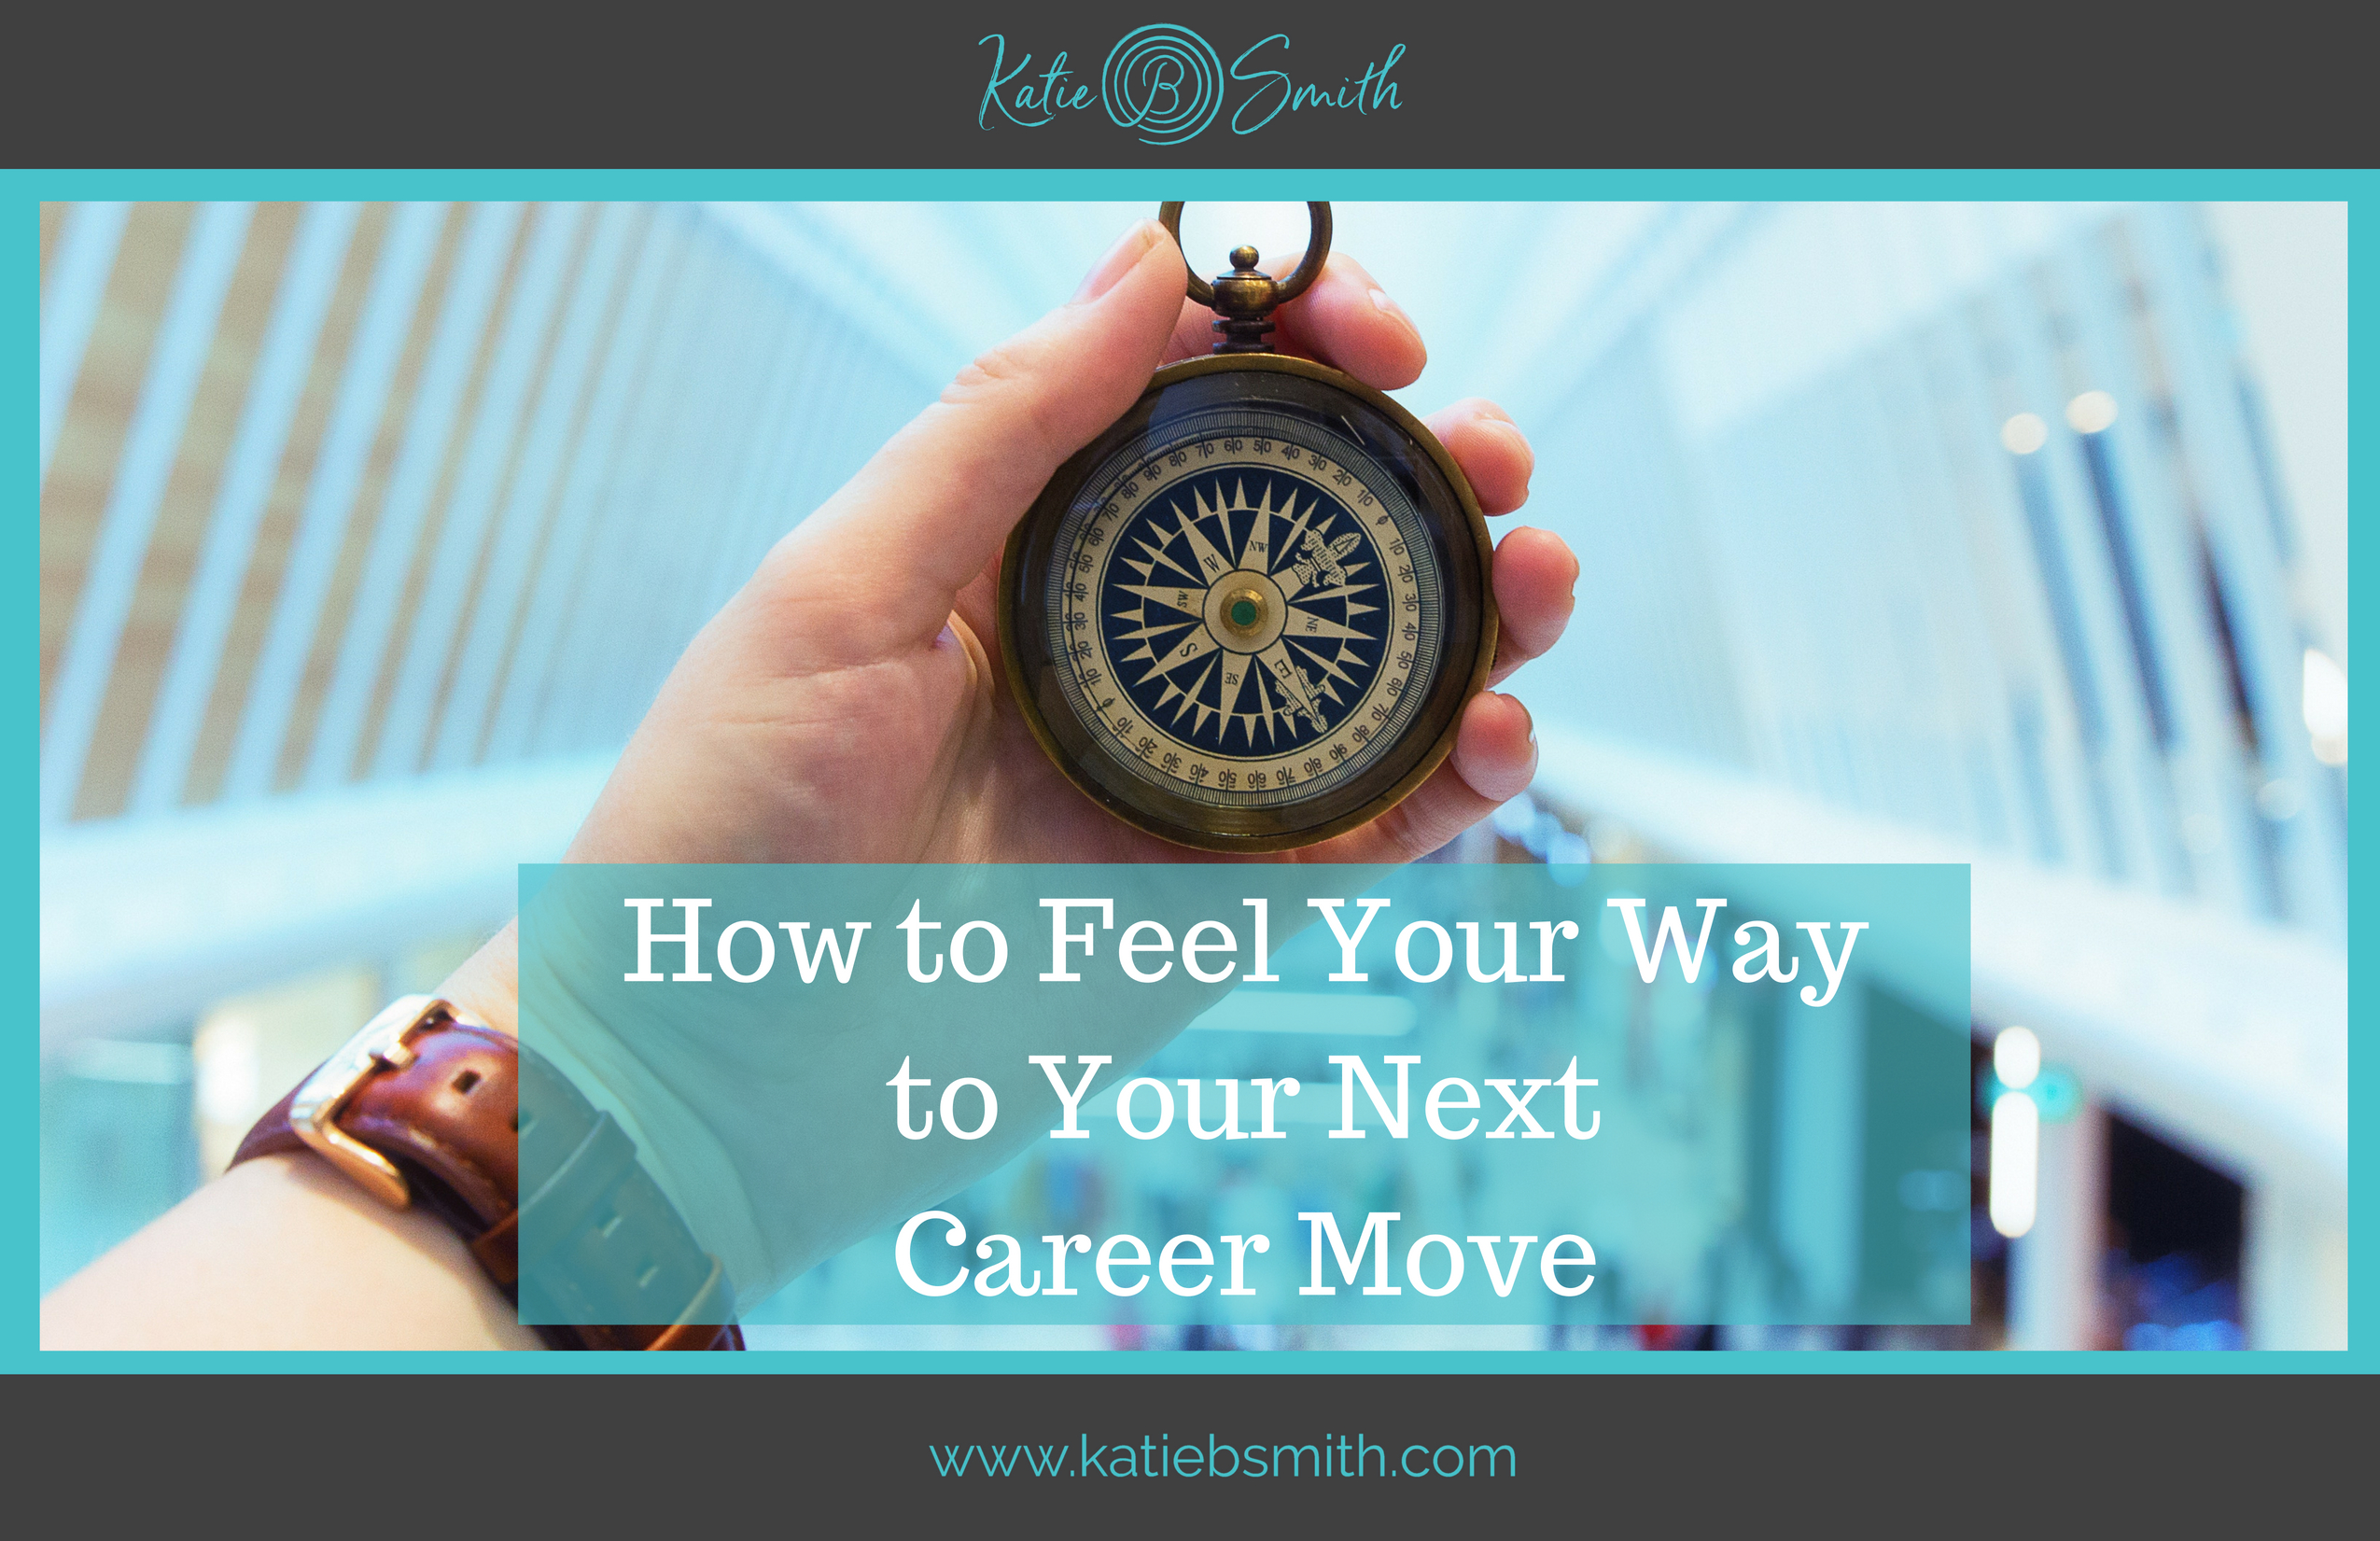 How to Feel Your Way to Your Next Career Move